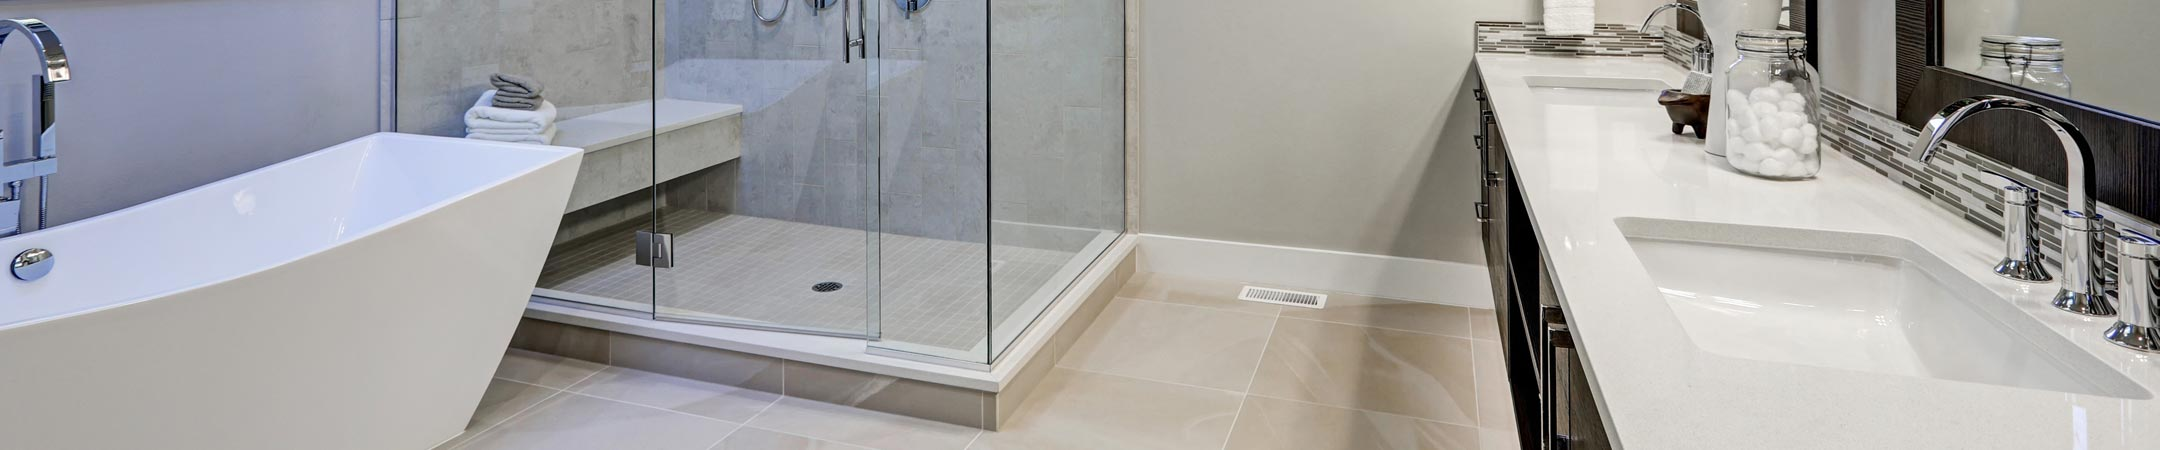 bade bathrooms building bathroom remodel company img brothers boise